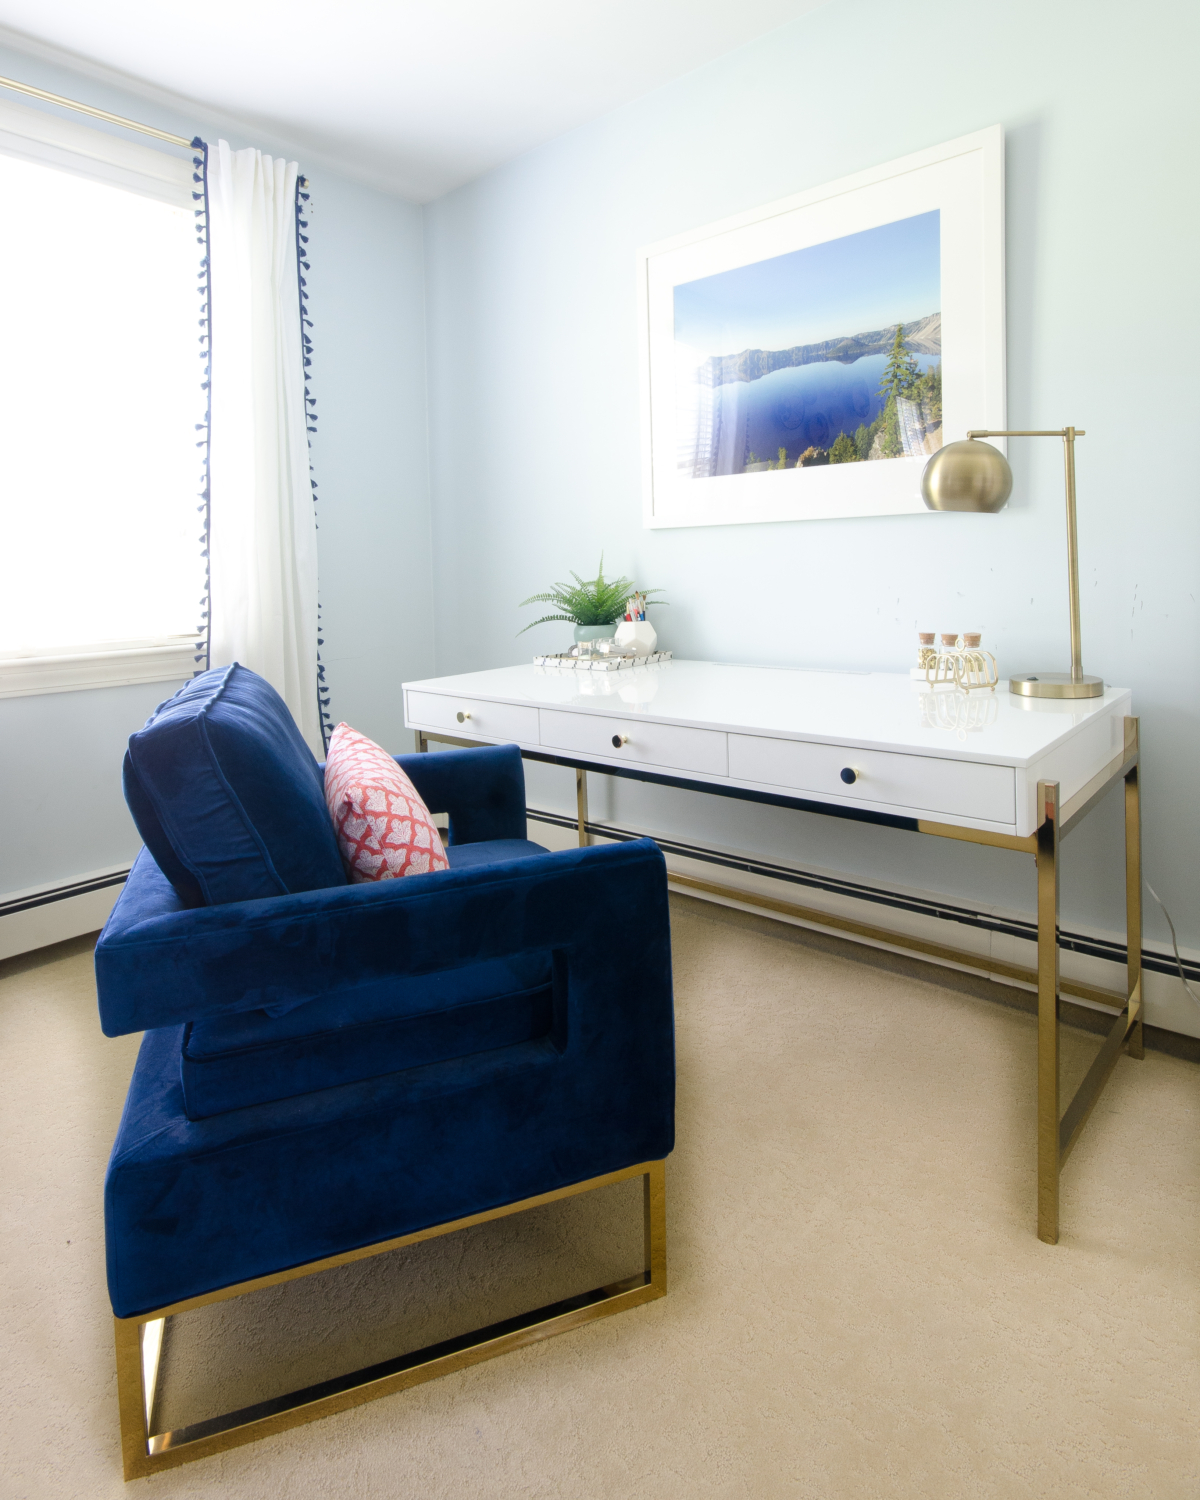 Glam desk area with blue velvet chair and white lacquered with brass accents